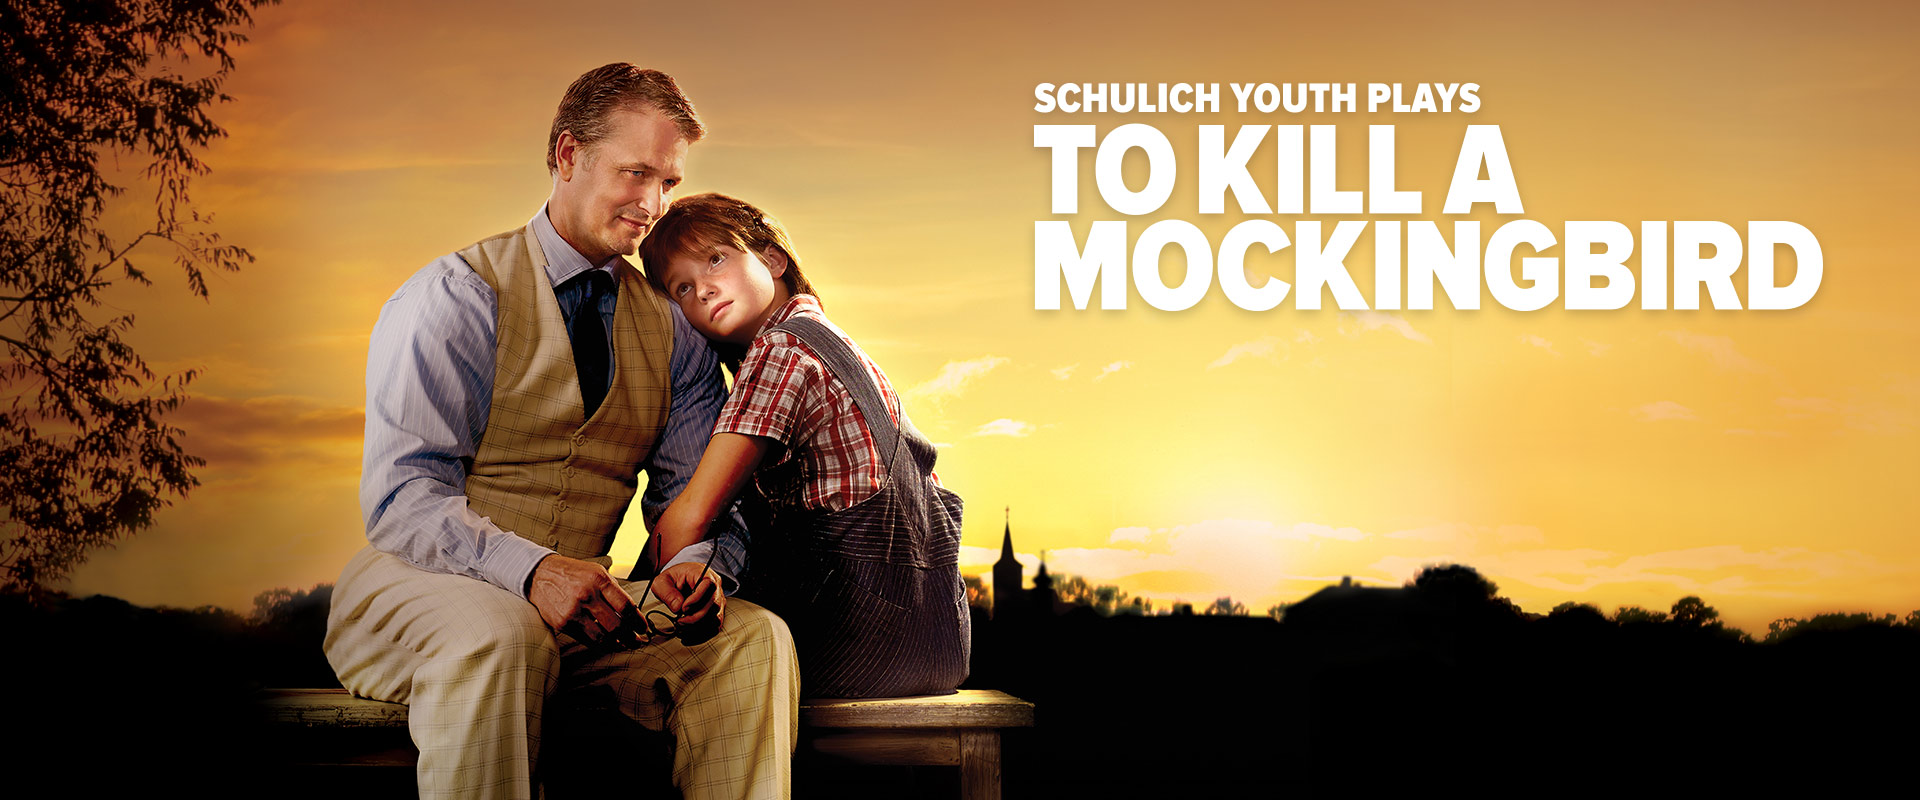 Publicity image from To Kill A Mocking Bird